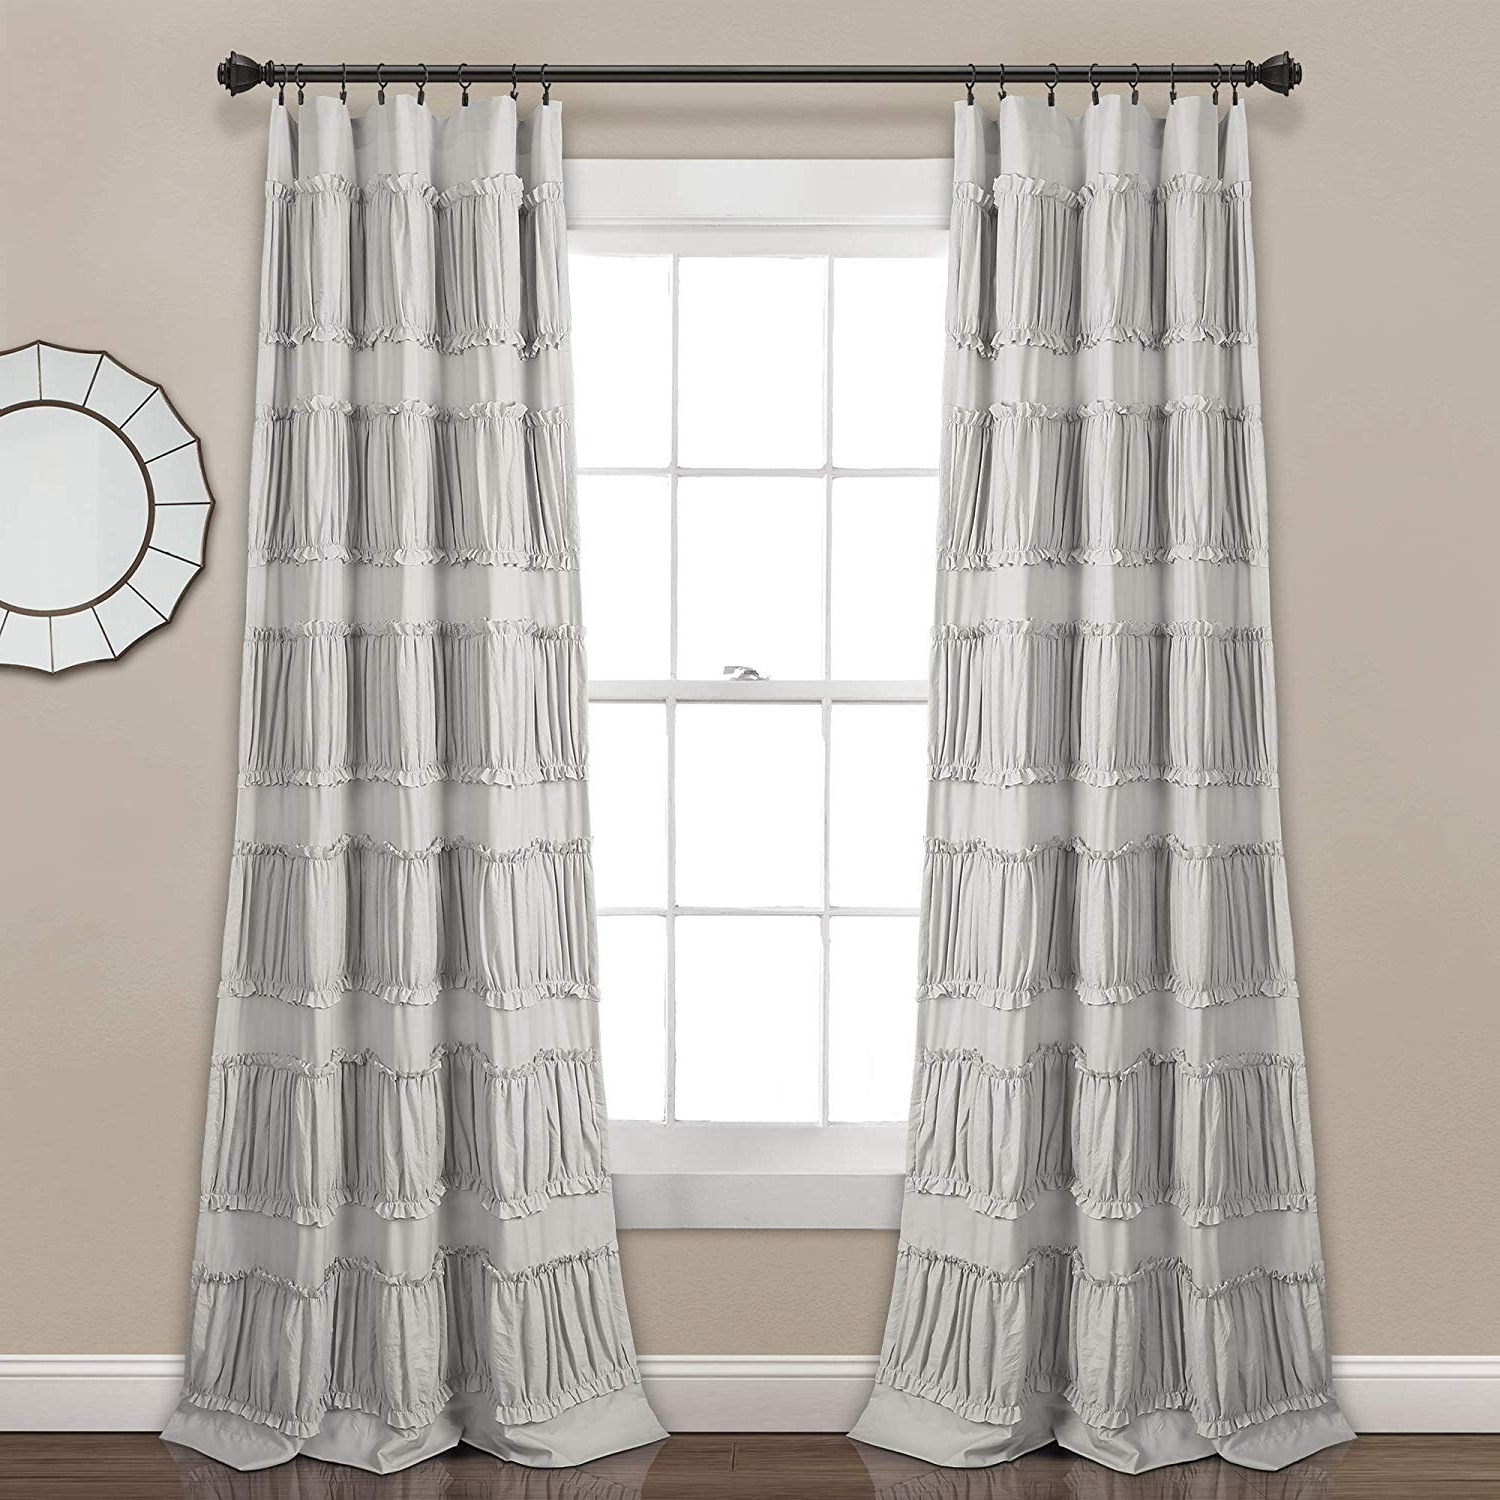 "Lush Decor Nova Ruffle Window Curtain Panel Pair, 84"" X 42"", Gray In Recent Lydia Ruffle Window Curtain Panel Pairs (View 9 of 20)"